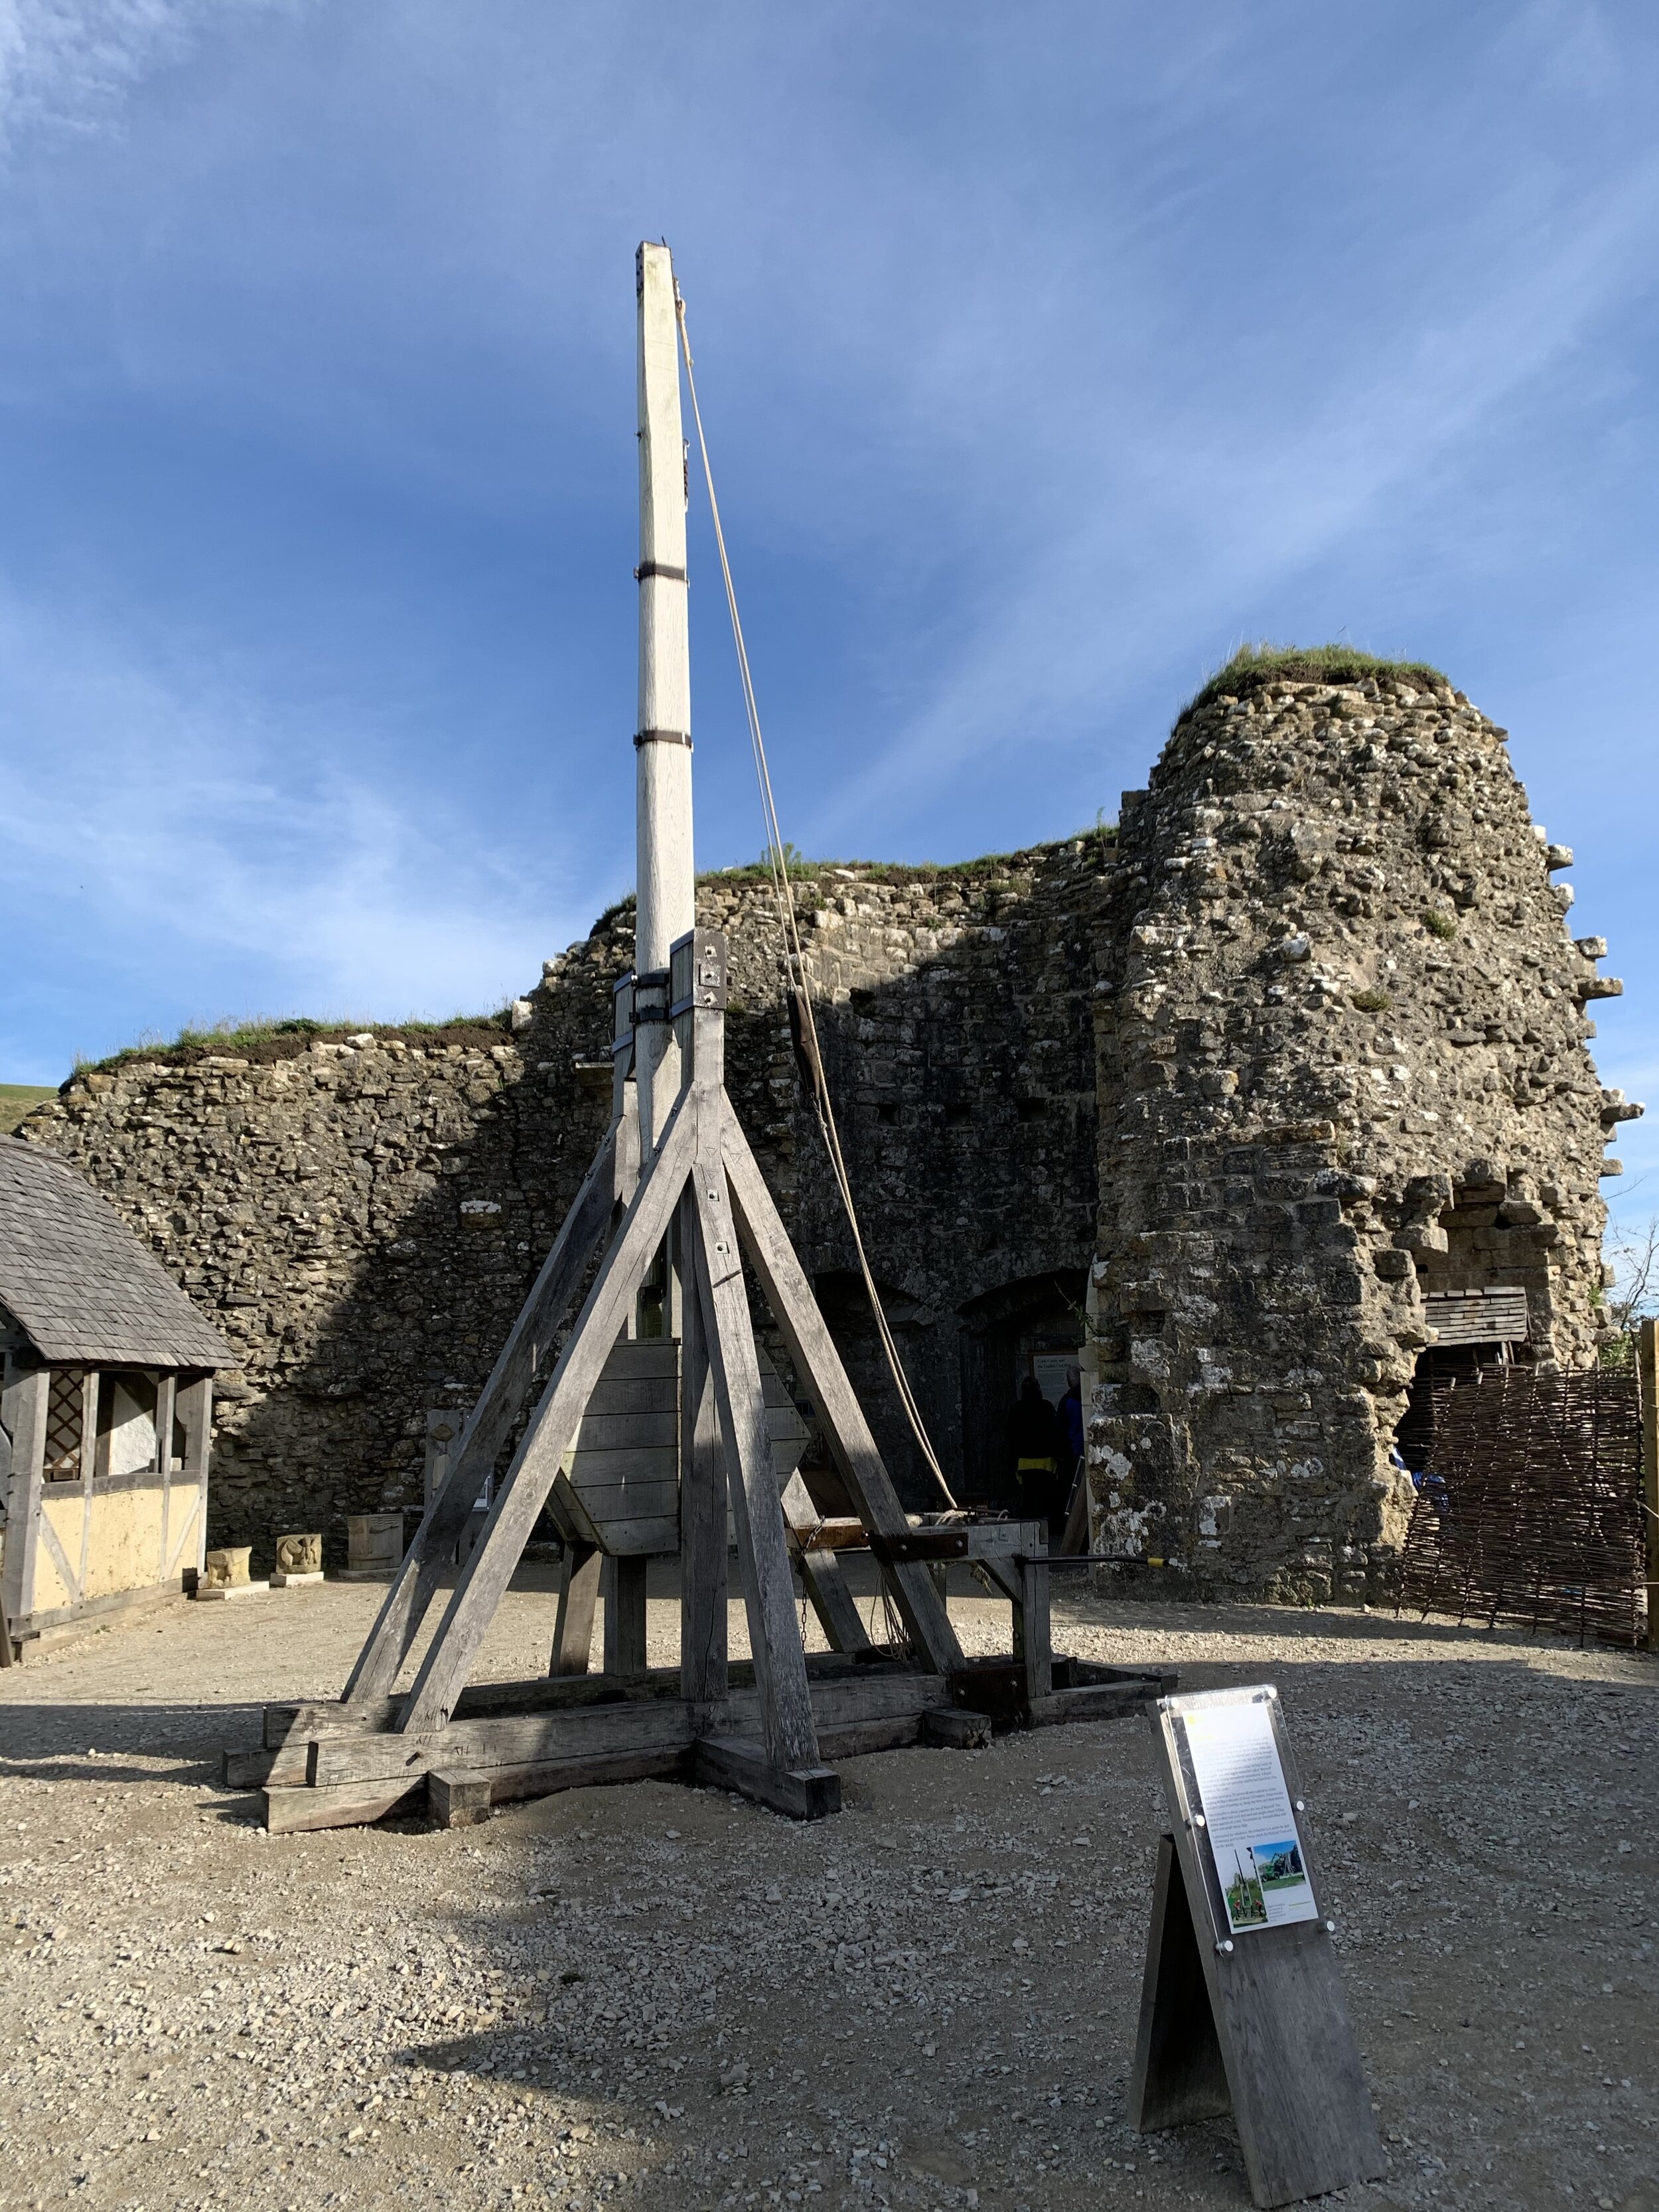 This trebuchant is a medieval version of a catapult. The missile is placed in a chute at the bottom and then propelled out by the 'hammer' end of the pivoted arm